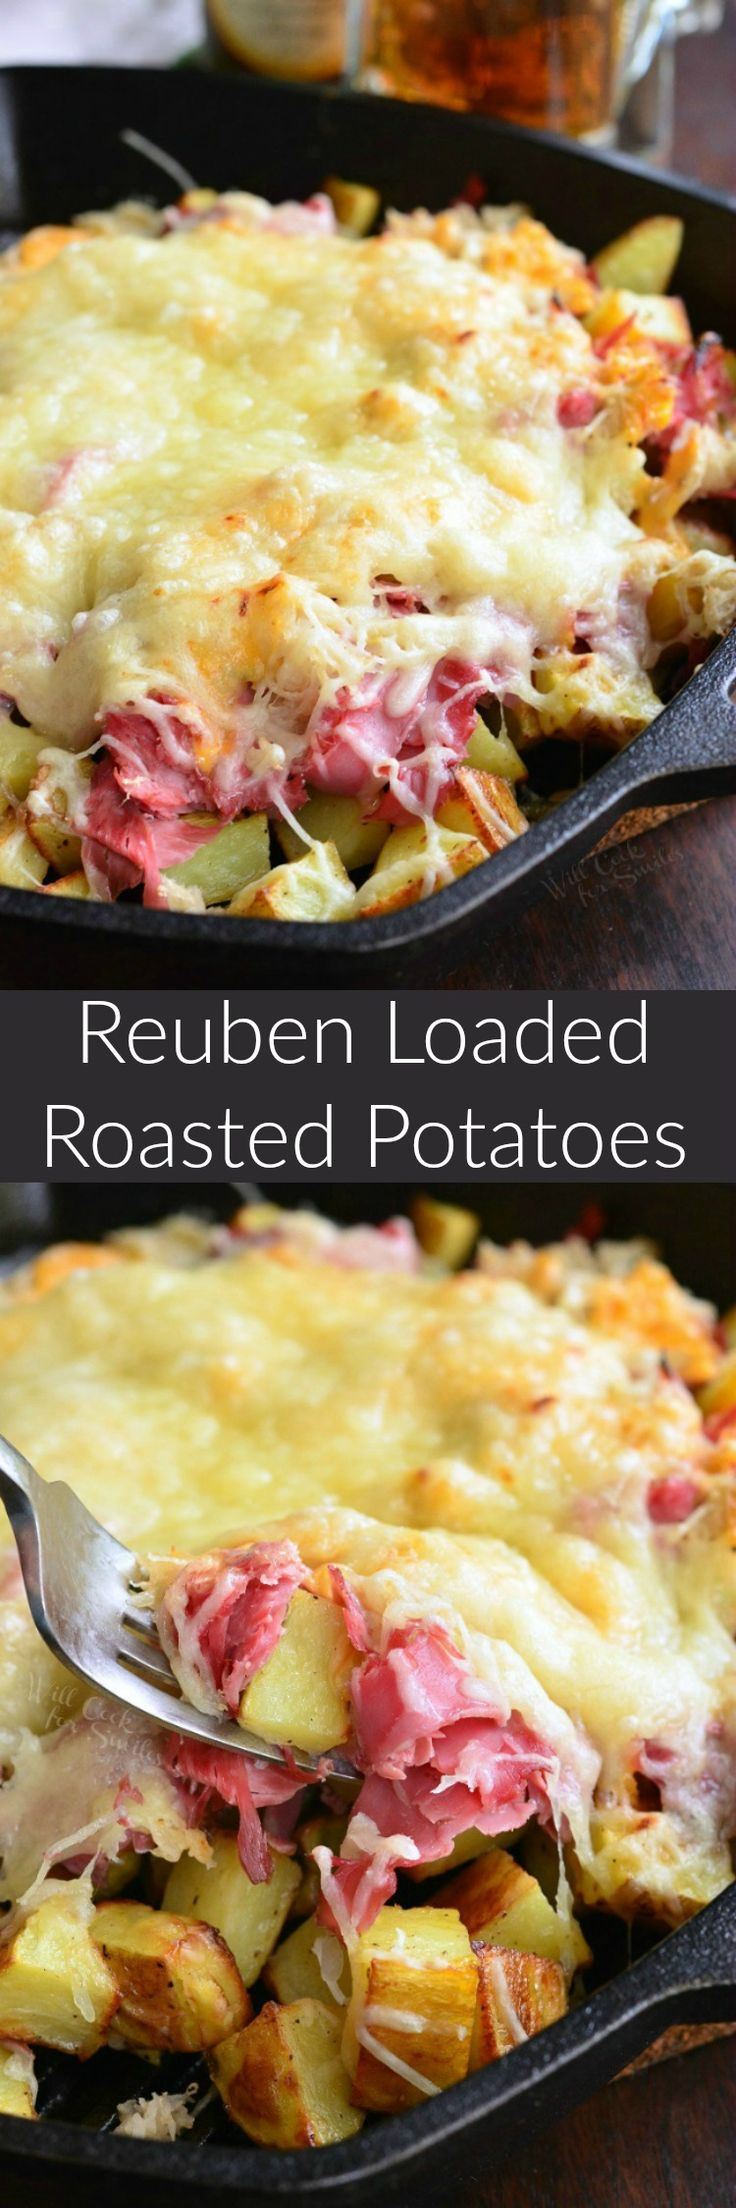 Reuben Loaded Roasted Potatoes. These golden potatoes are roasted and then loaded with corned beef, sauerkraut, thousand island dressing, and lots of Swiss cheese.